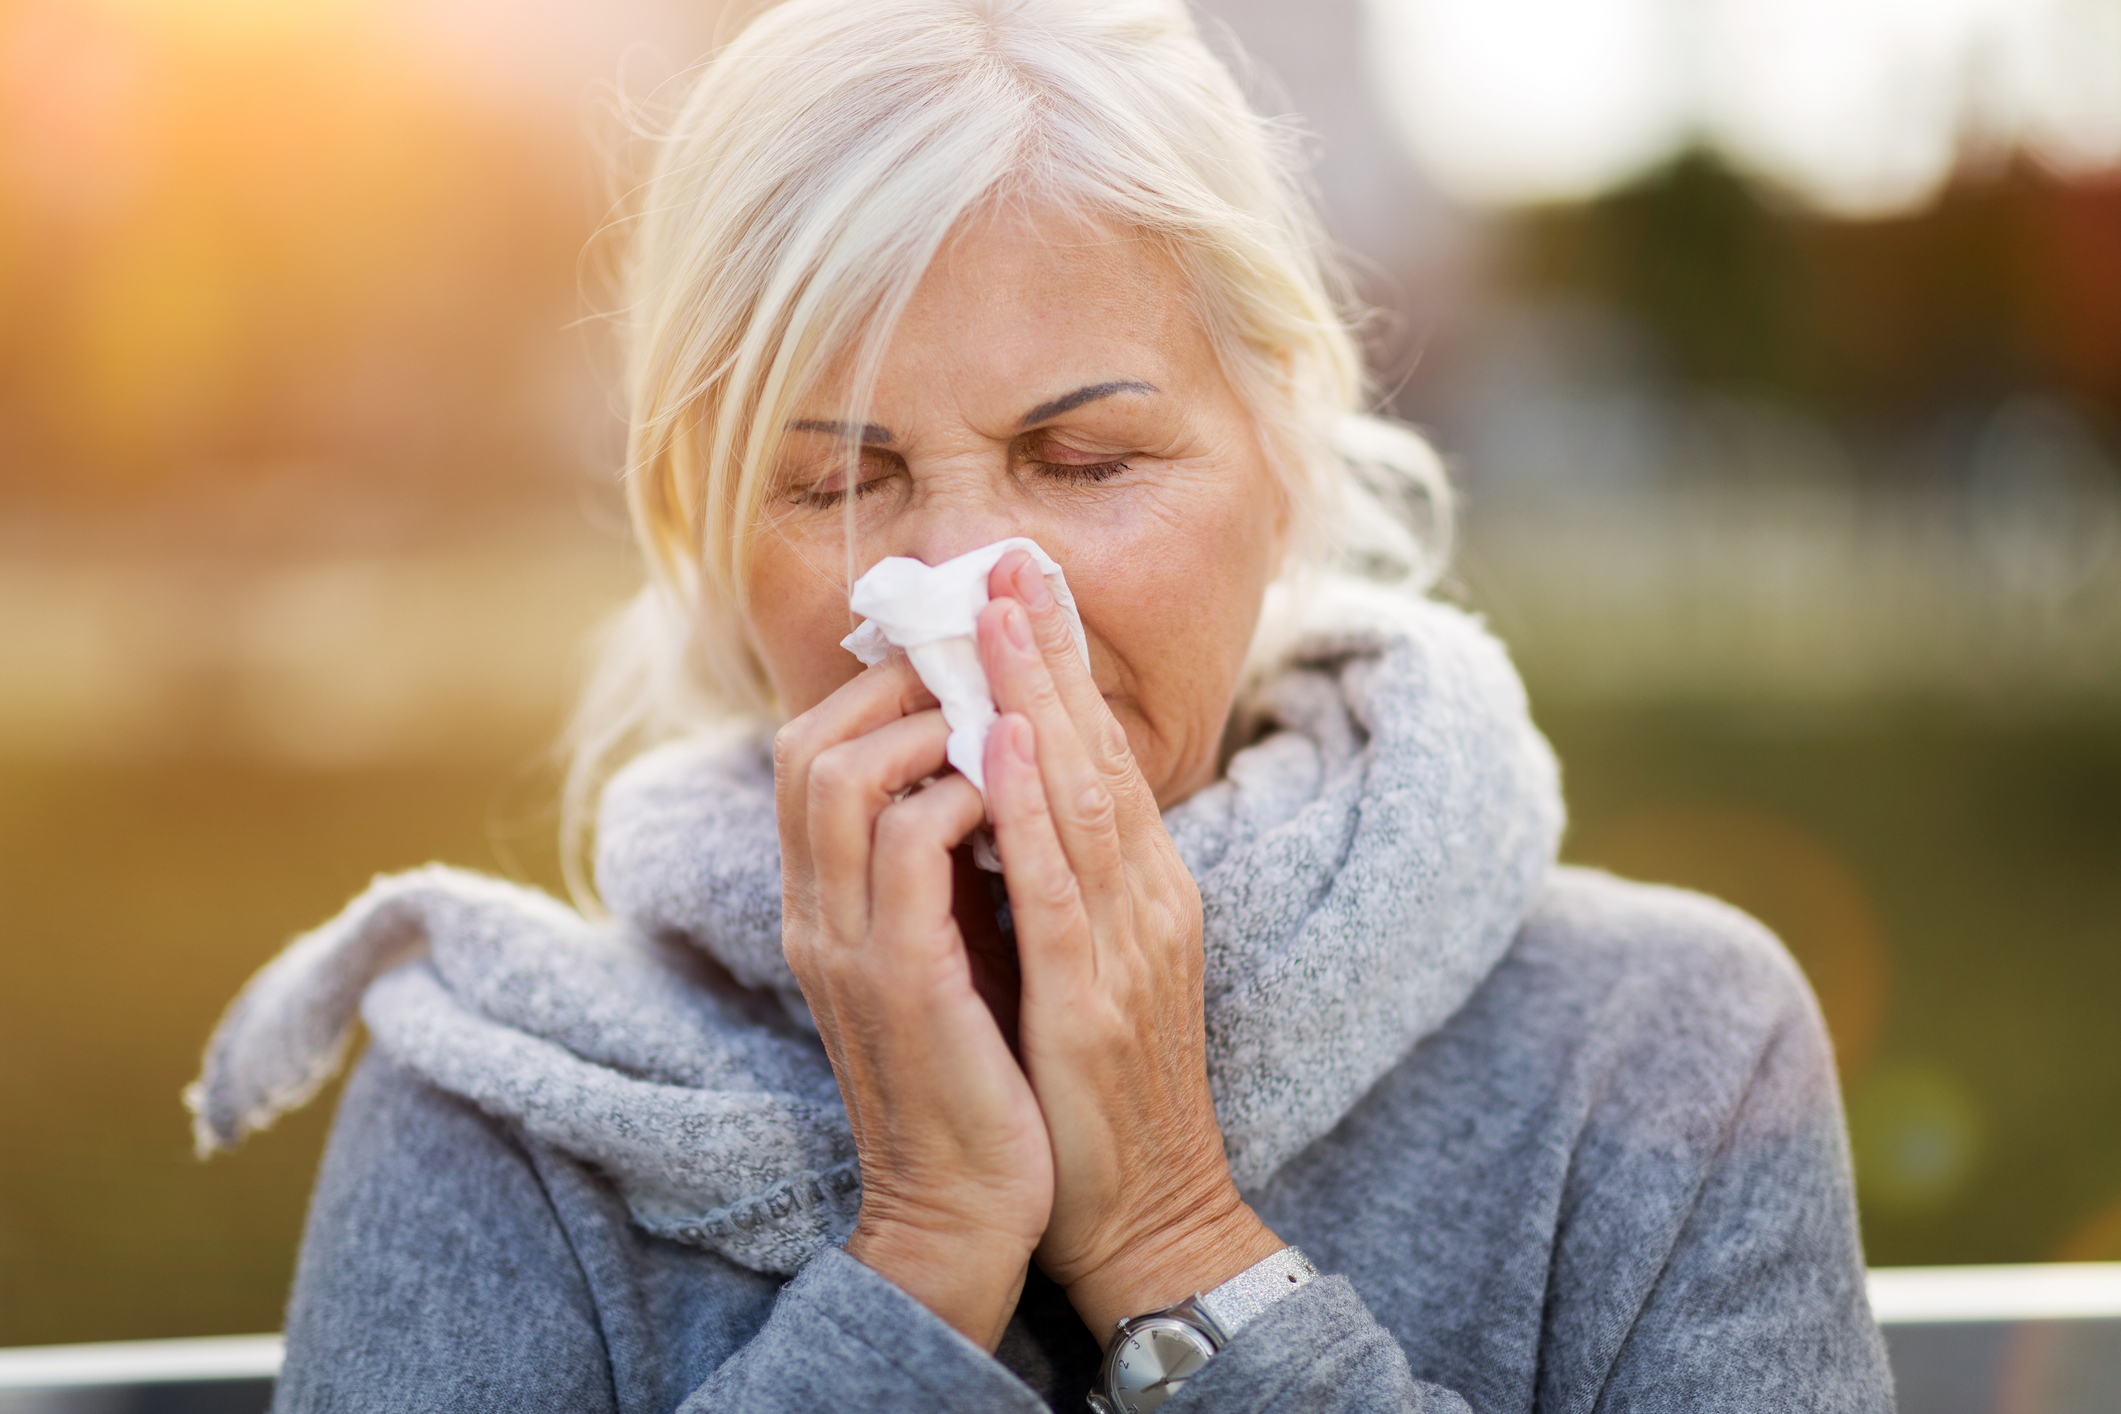 Influenza numbers start to come in nationwide